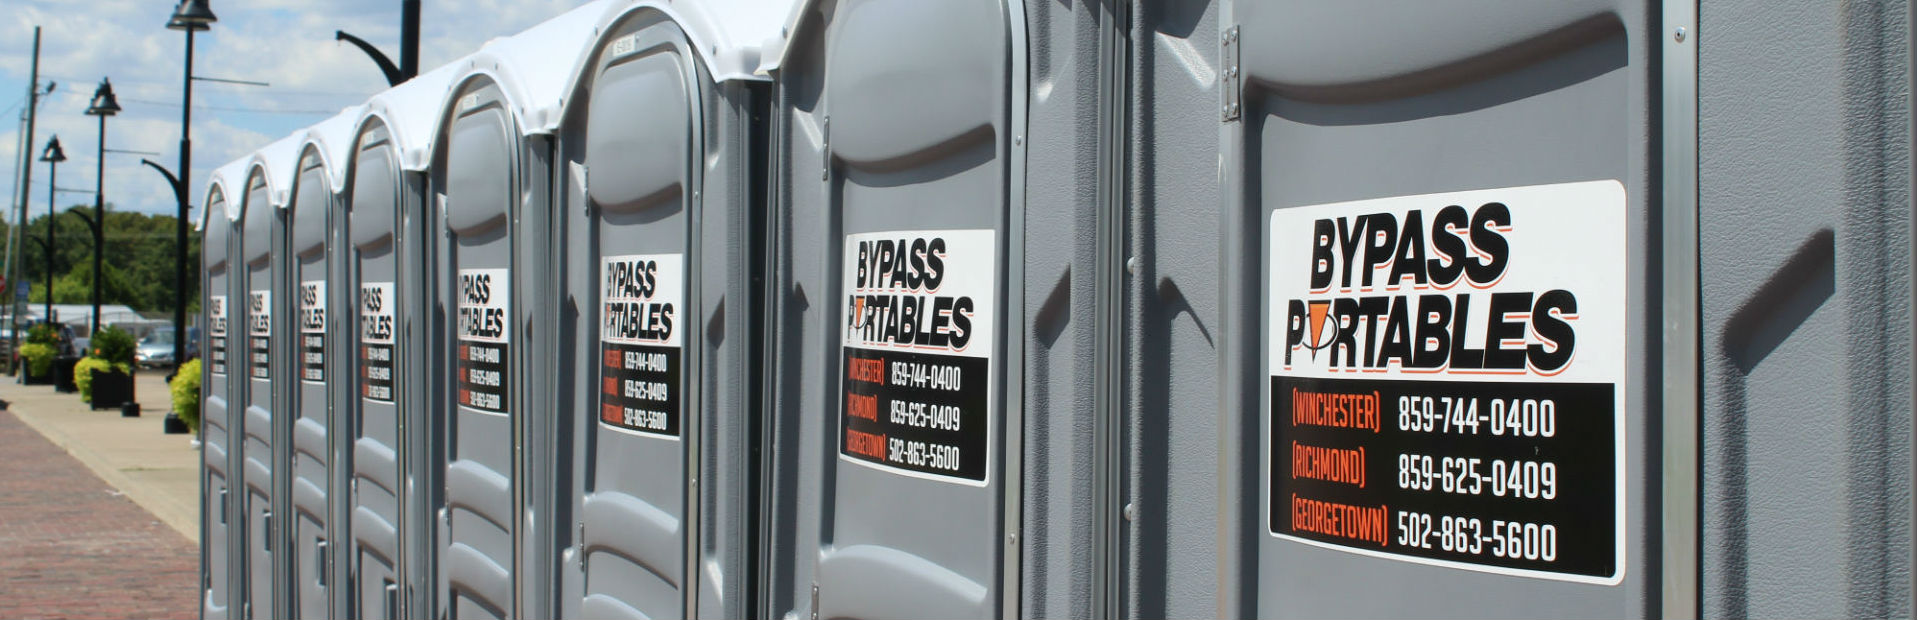 Port-a-Potty Rentals in Georgetown, Winchester, Richmond KY